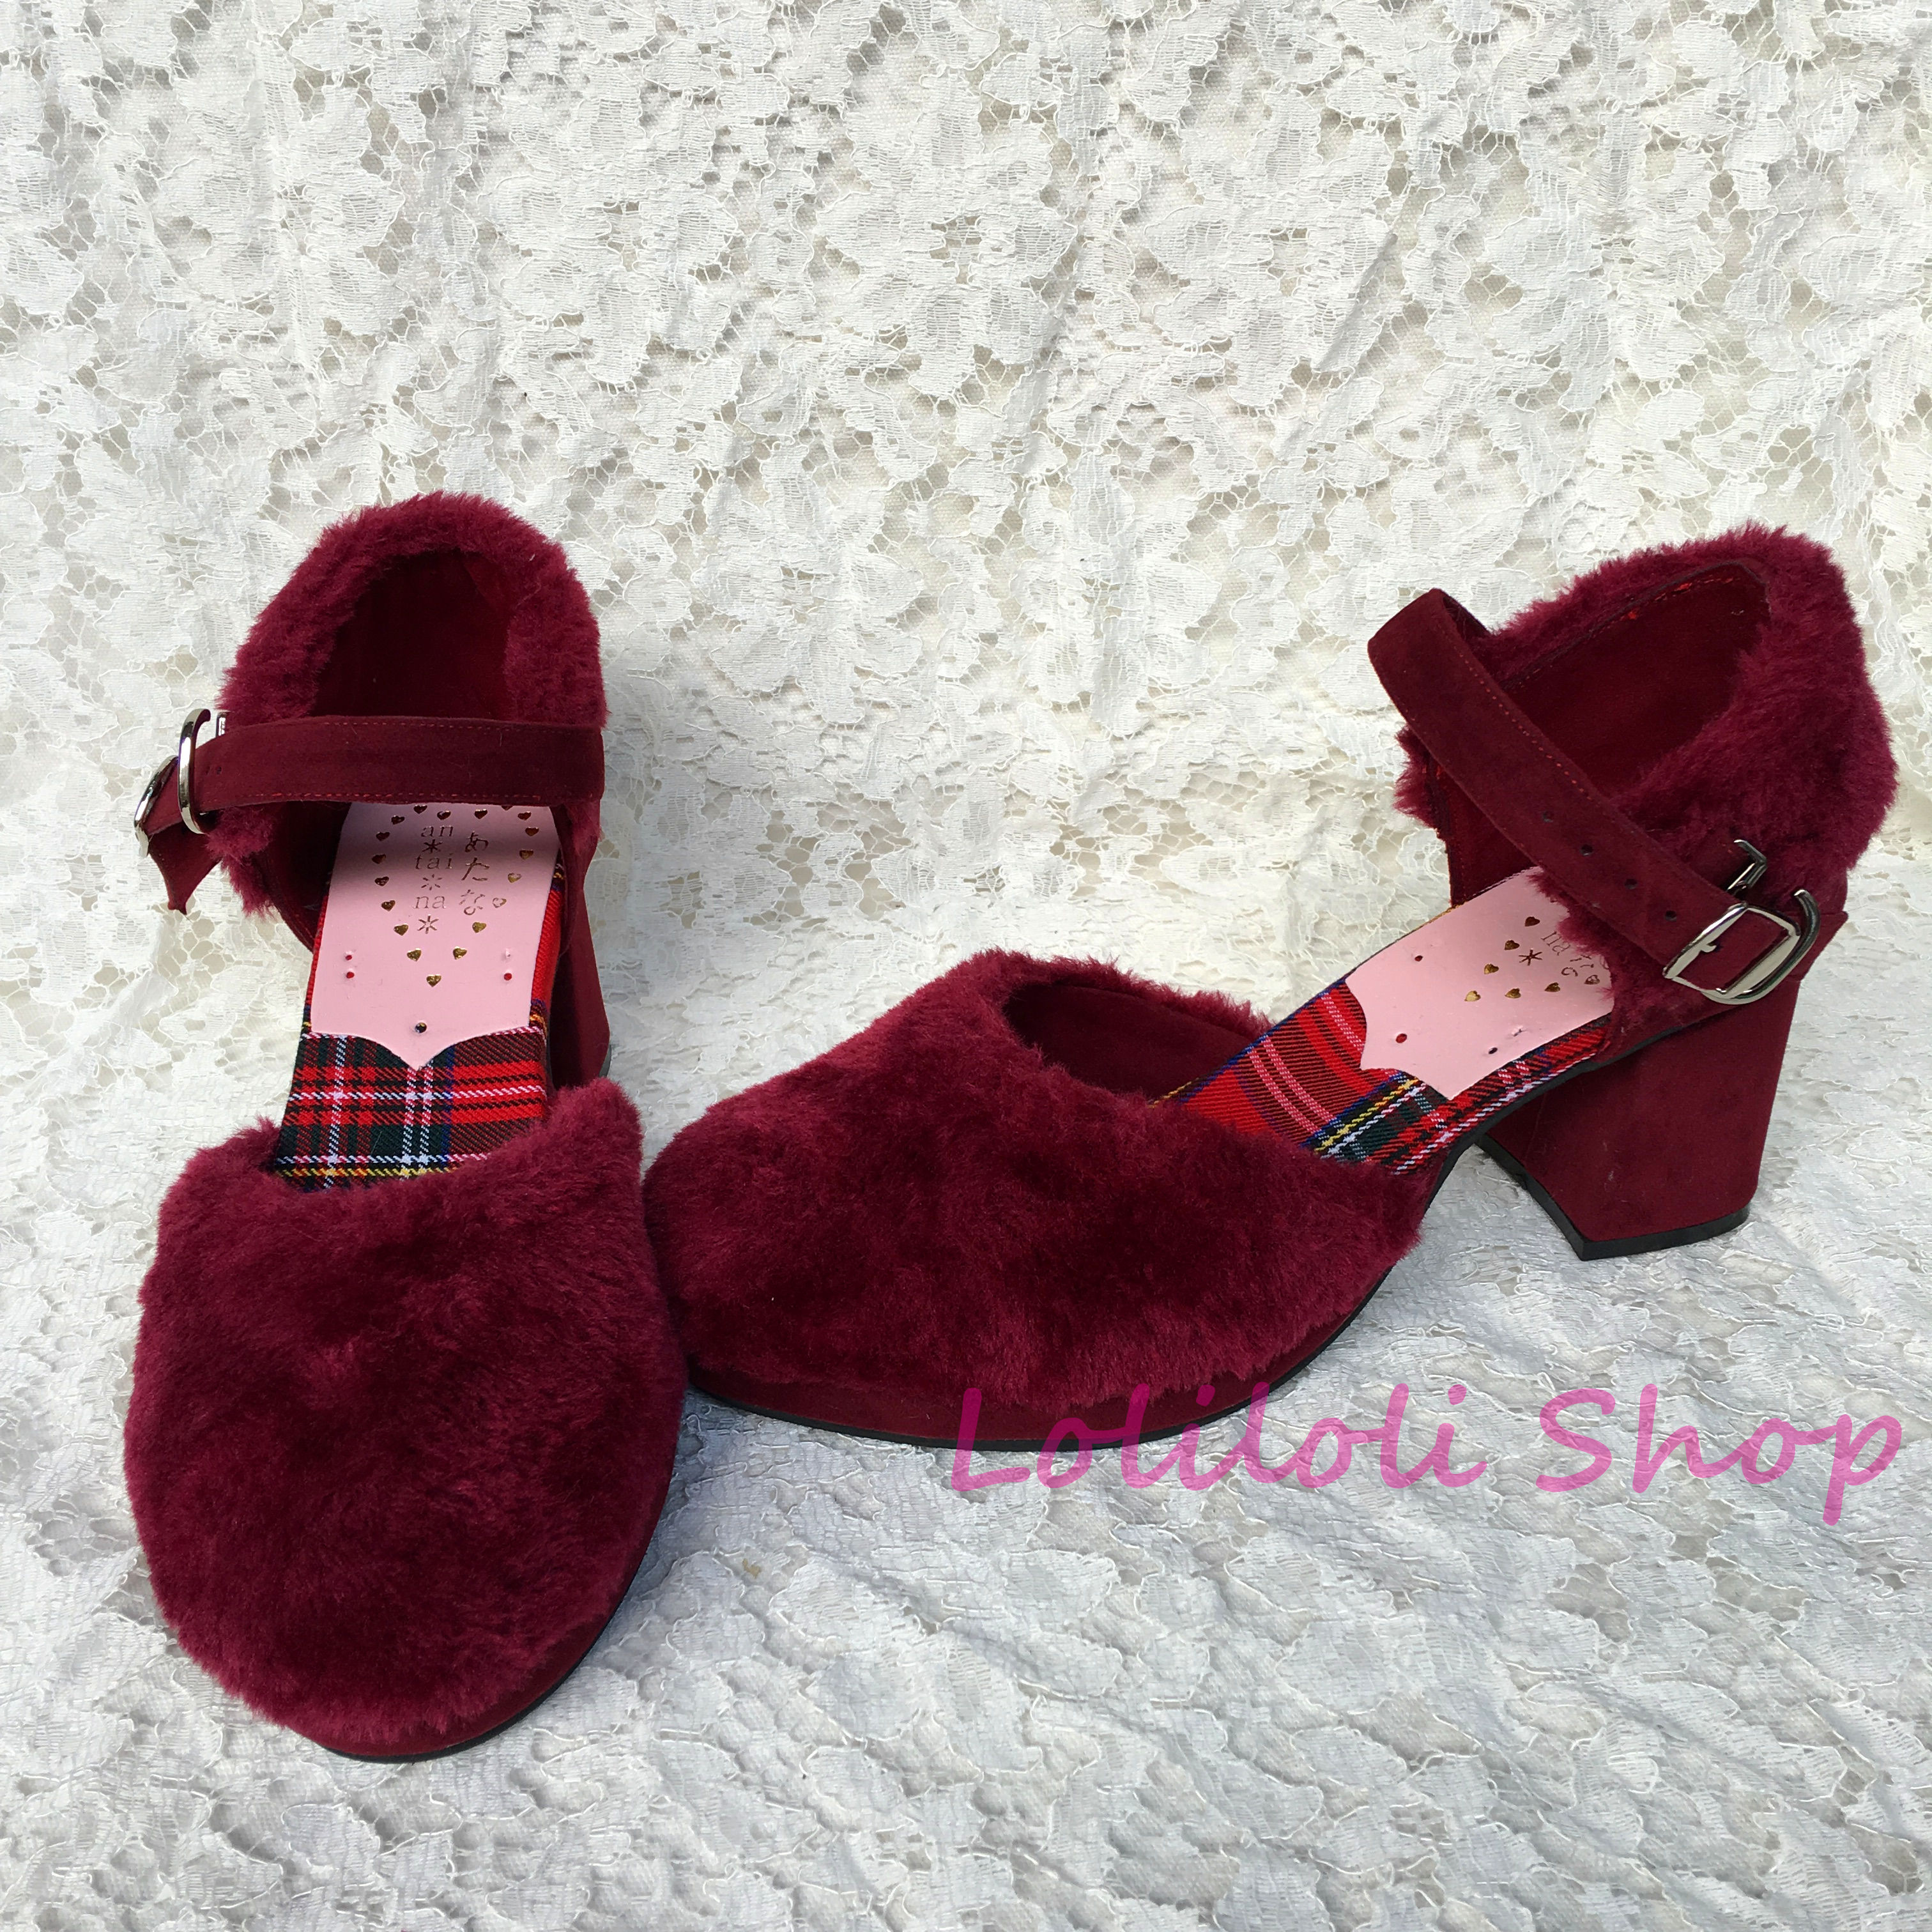 Princess sweet lolita shoes Lolilloliyoyo antaina Japanese design Lolita wine red plush drawstring rough heel custom 4175-1 цена